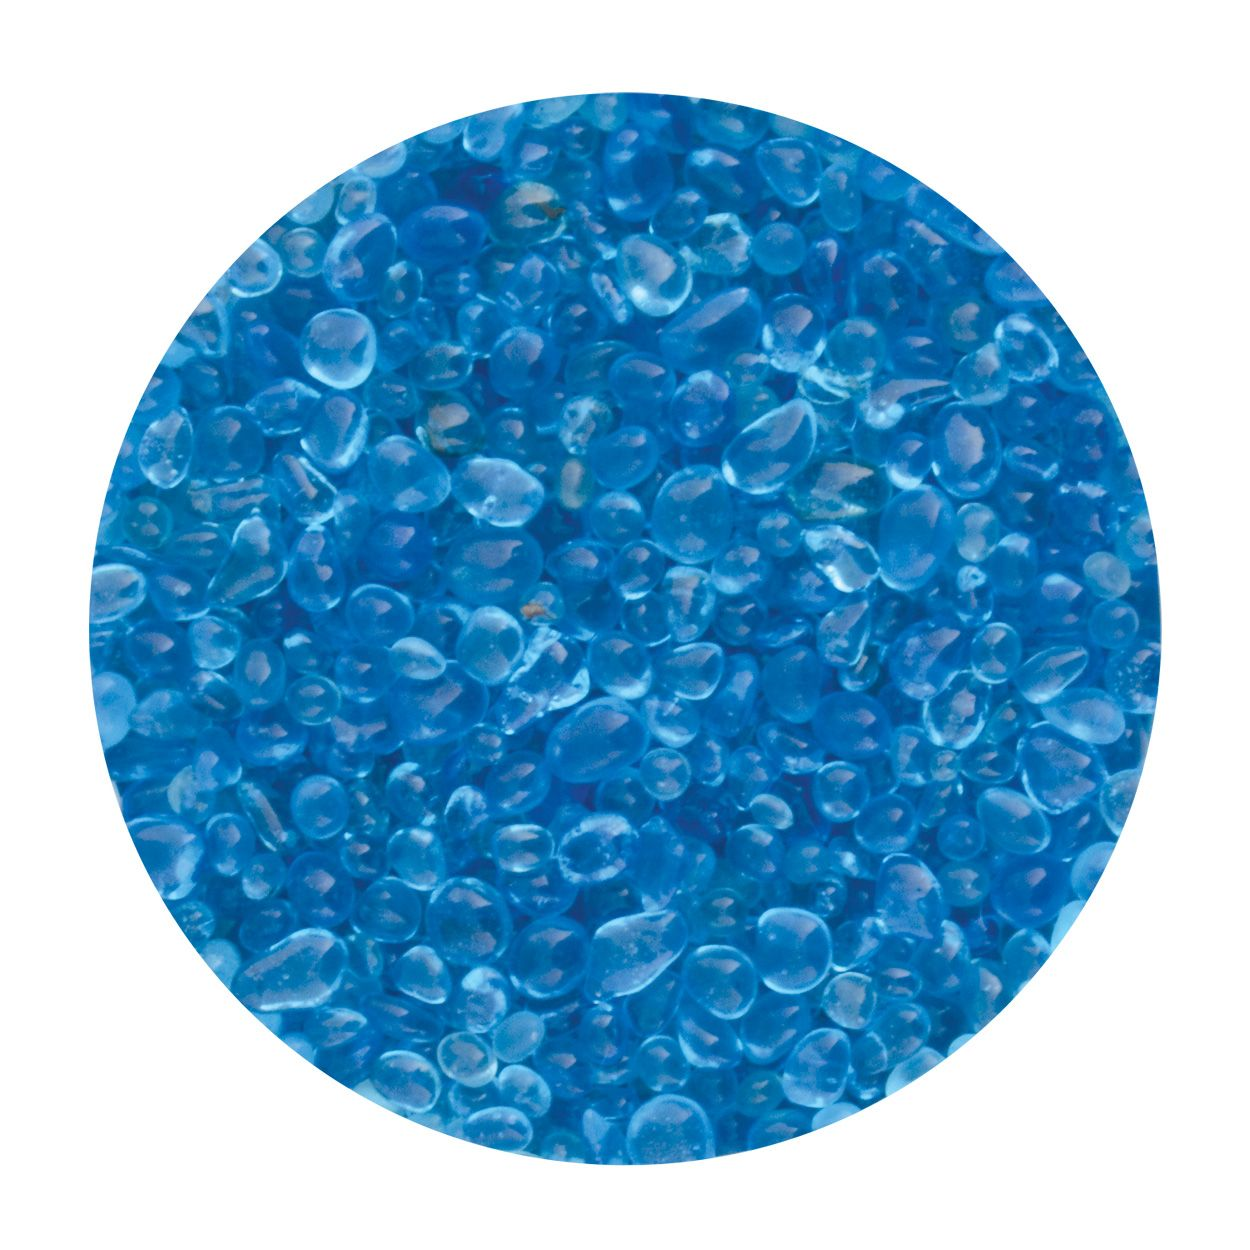 Seapora Betta Gravel - Blue - 350 g